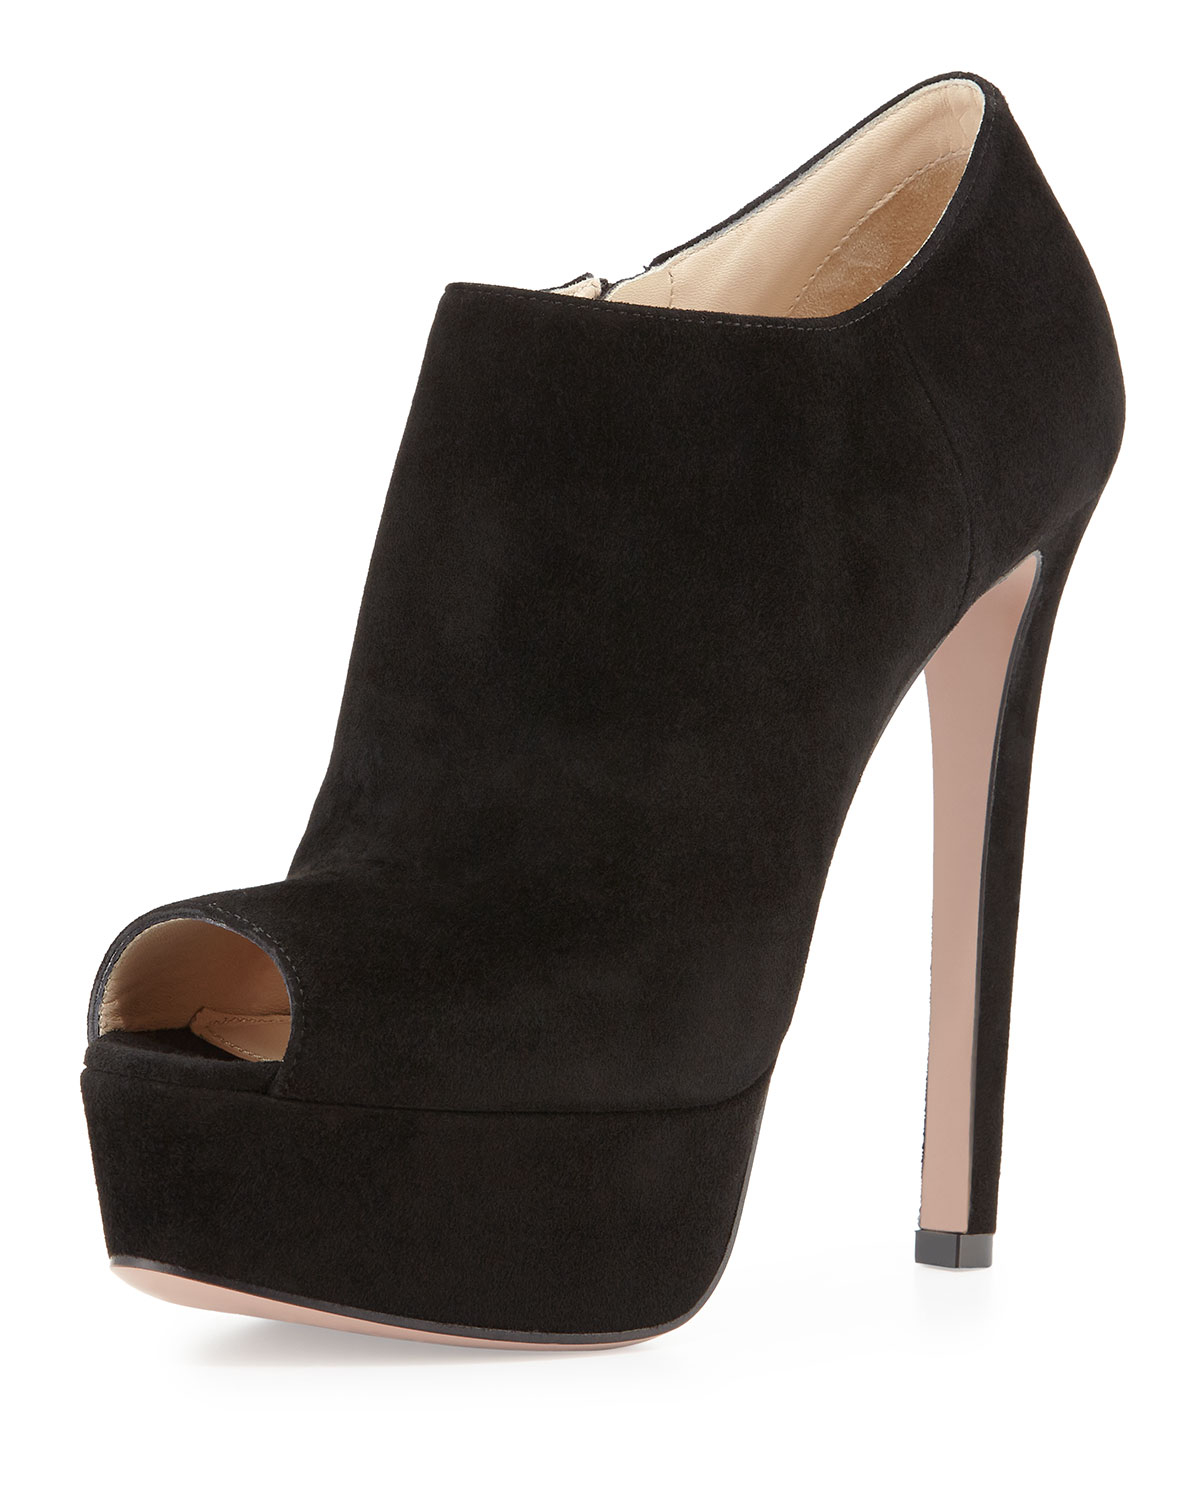 Prada Peep-Toe Suede Booties under $60 cheap price from china free shipping low price amazon sale online BYmsv9A